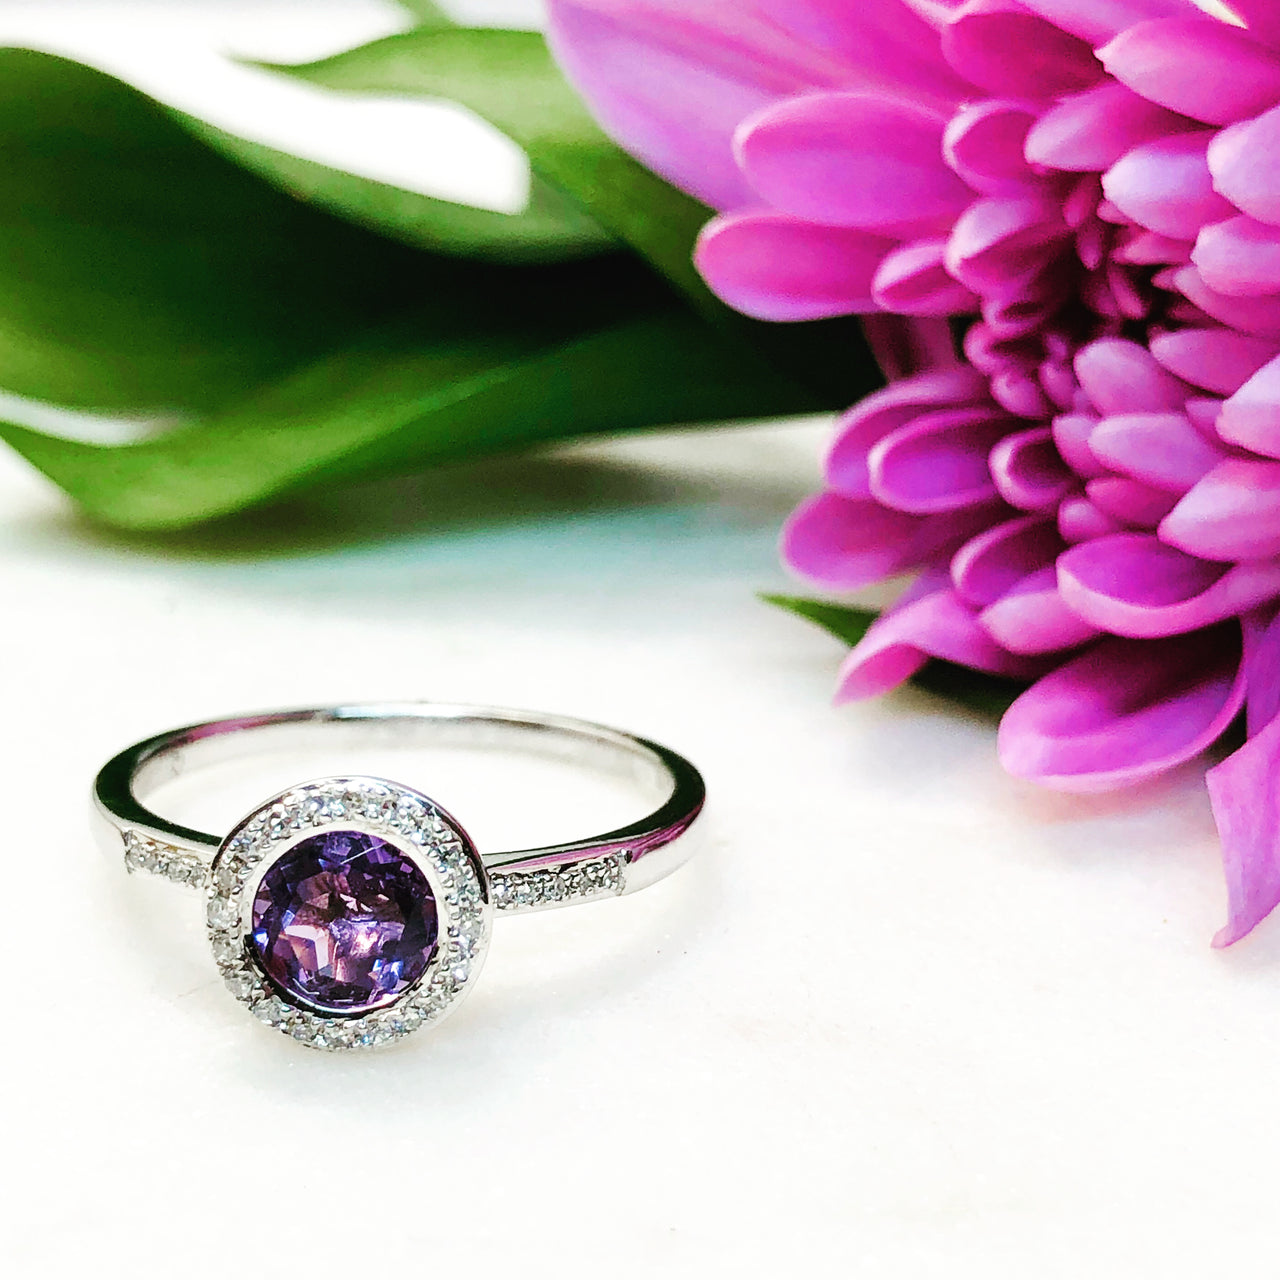 14K White Gold Amethyst and Diamond Ring.